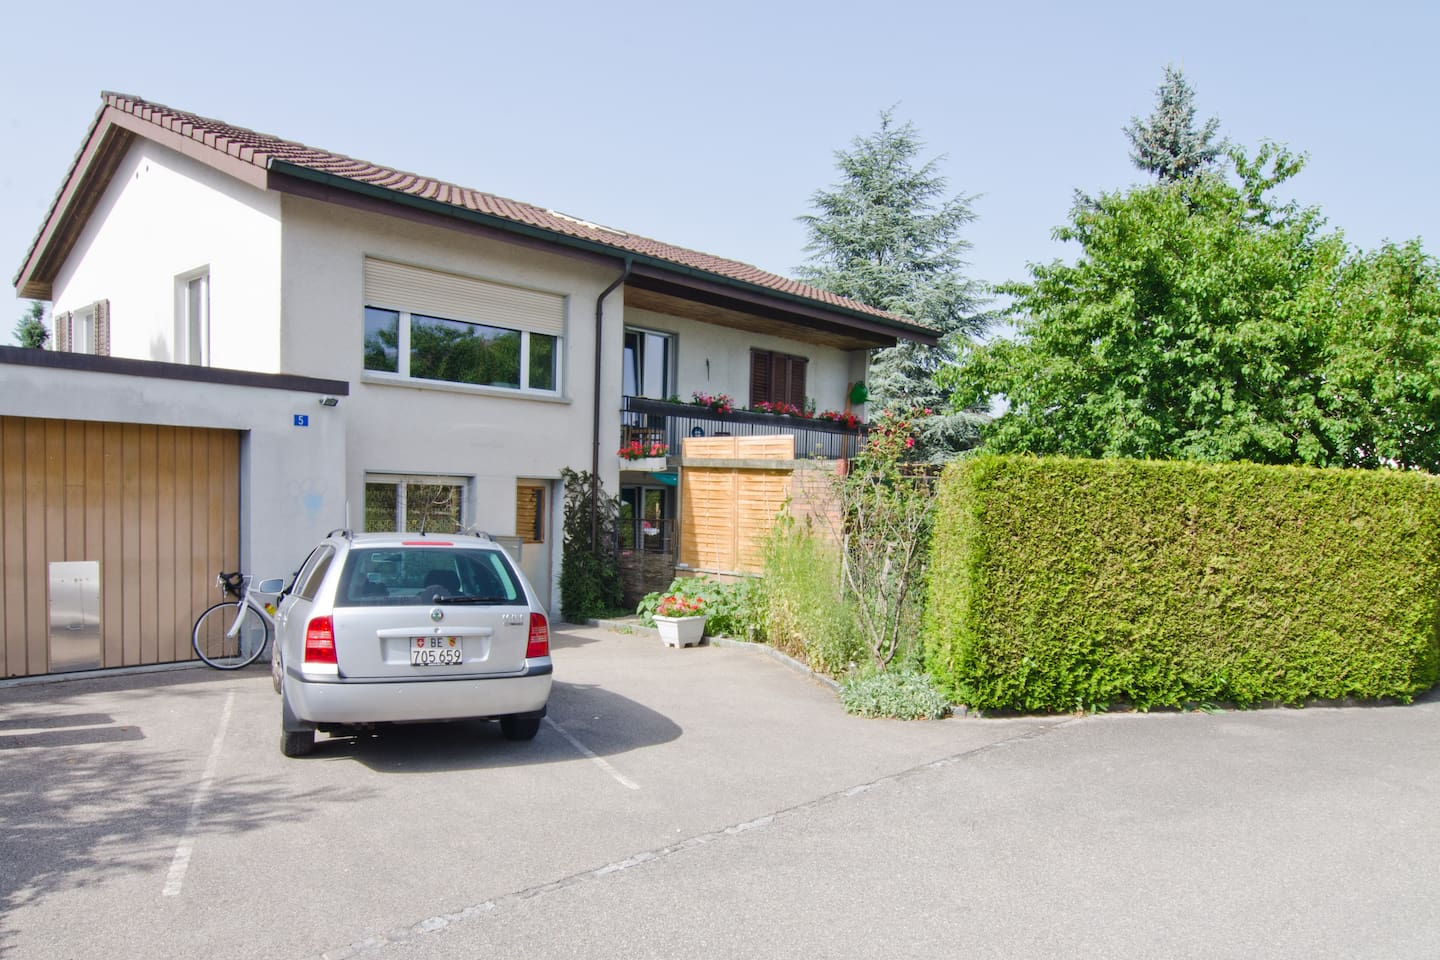 front view of our house with the entrance door and big parking space (3 cars)